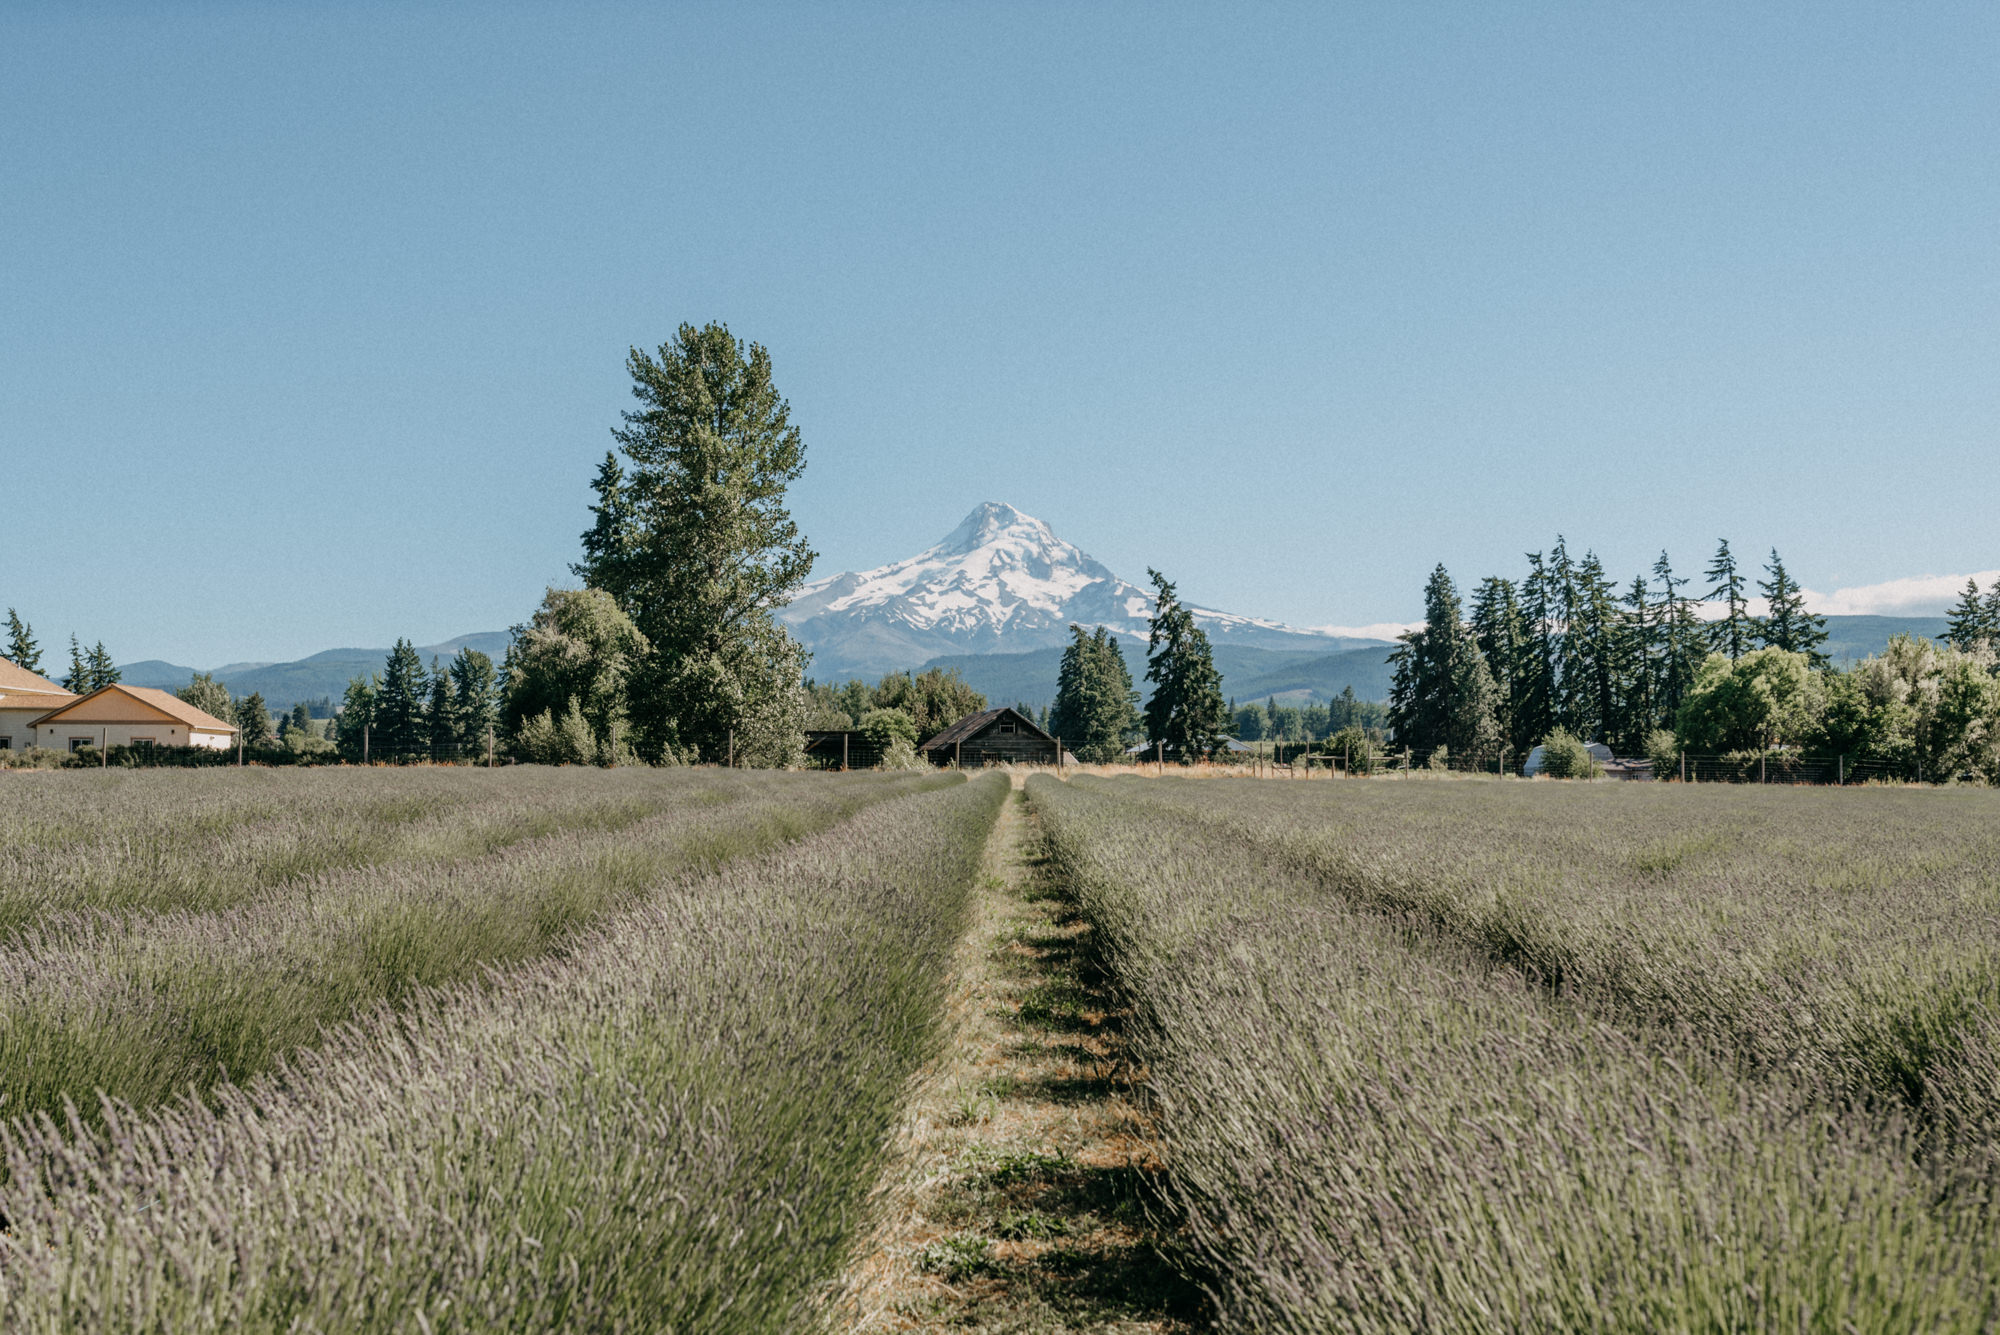 34-Mt-hood-lavender-farms-engagment-couple-summer-7912.jpg